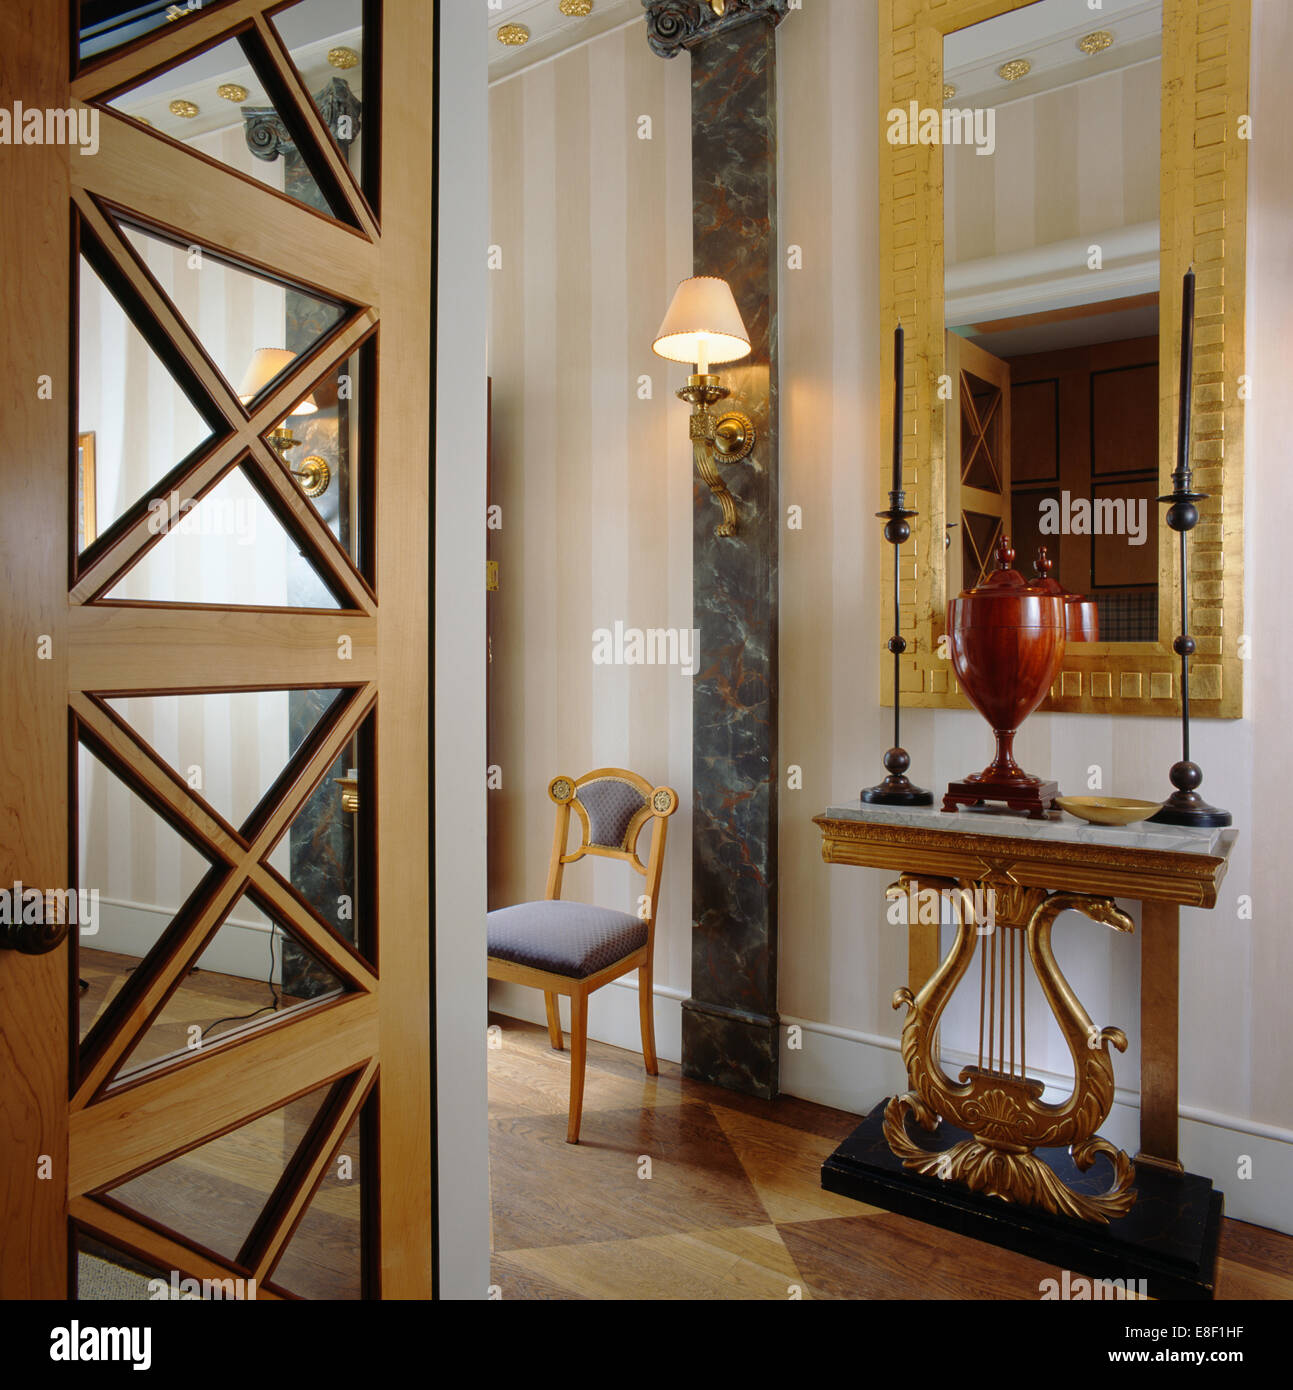 Mirror Above Ornate Console Table With Tall Candles In Elegant Hall With  Striped Wallpaper And Angular